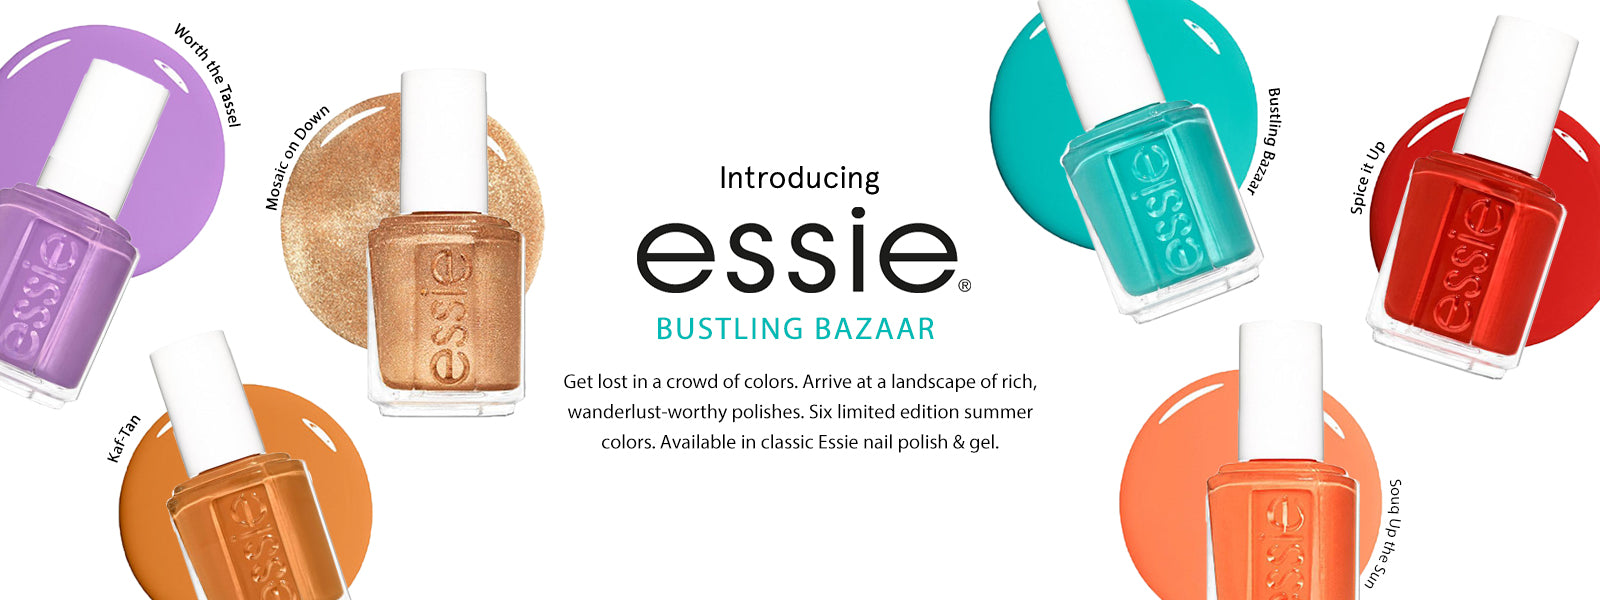 Essie Summer 2020 Bustling Bazaar Collection